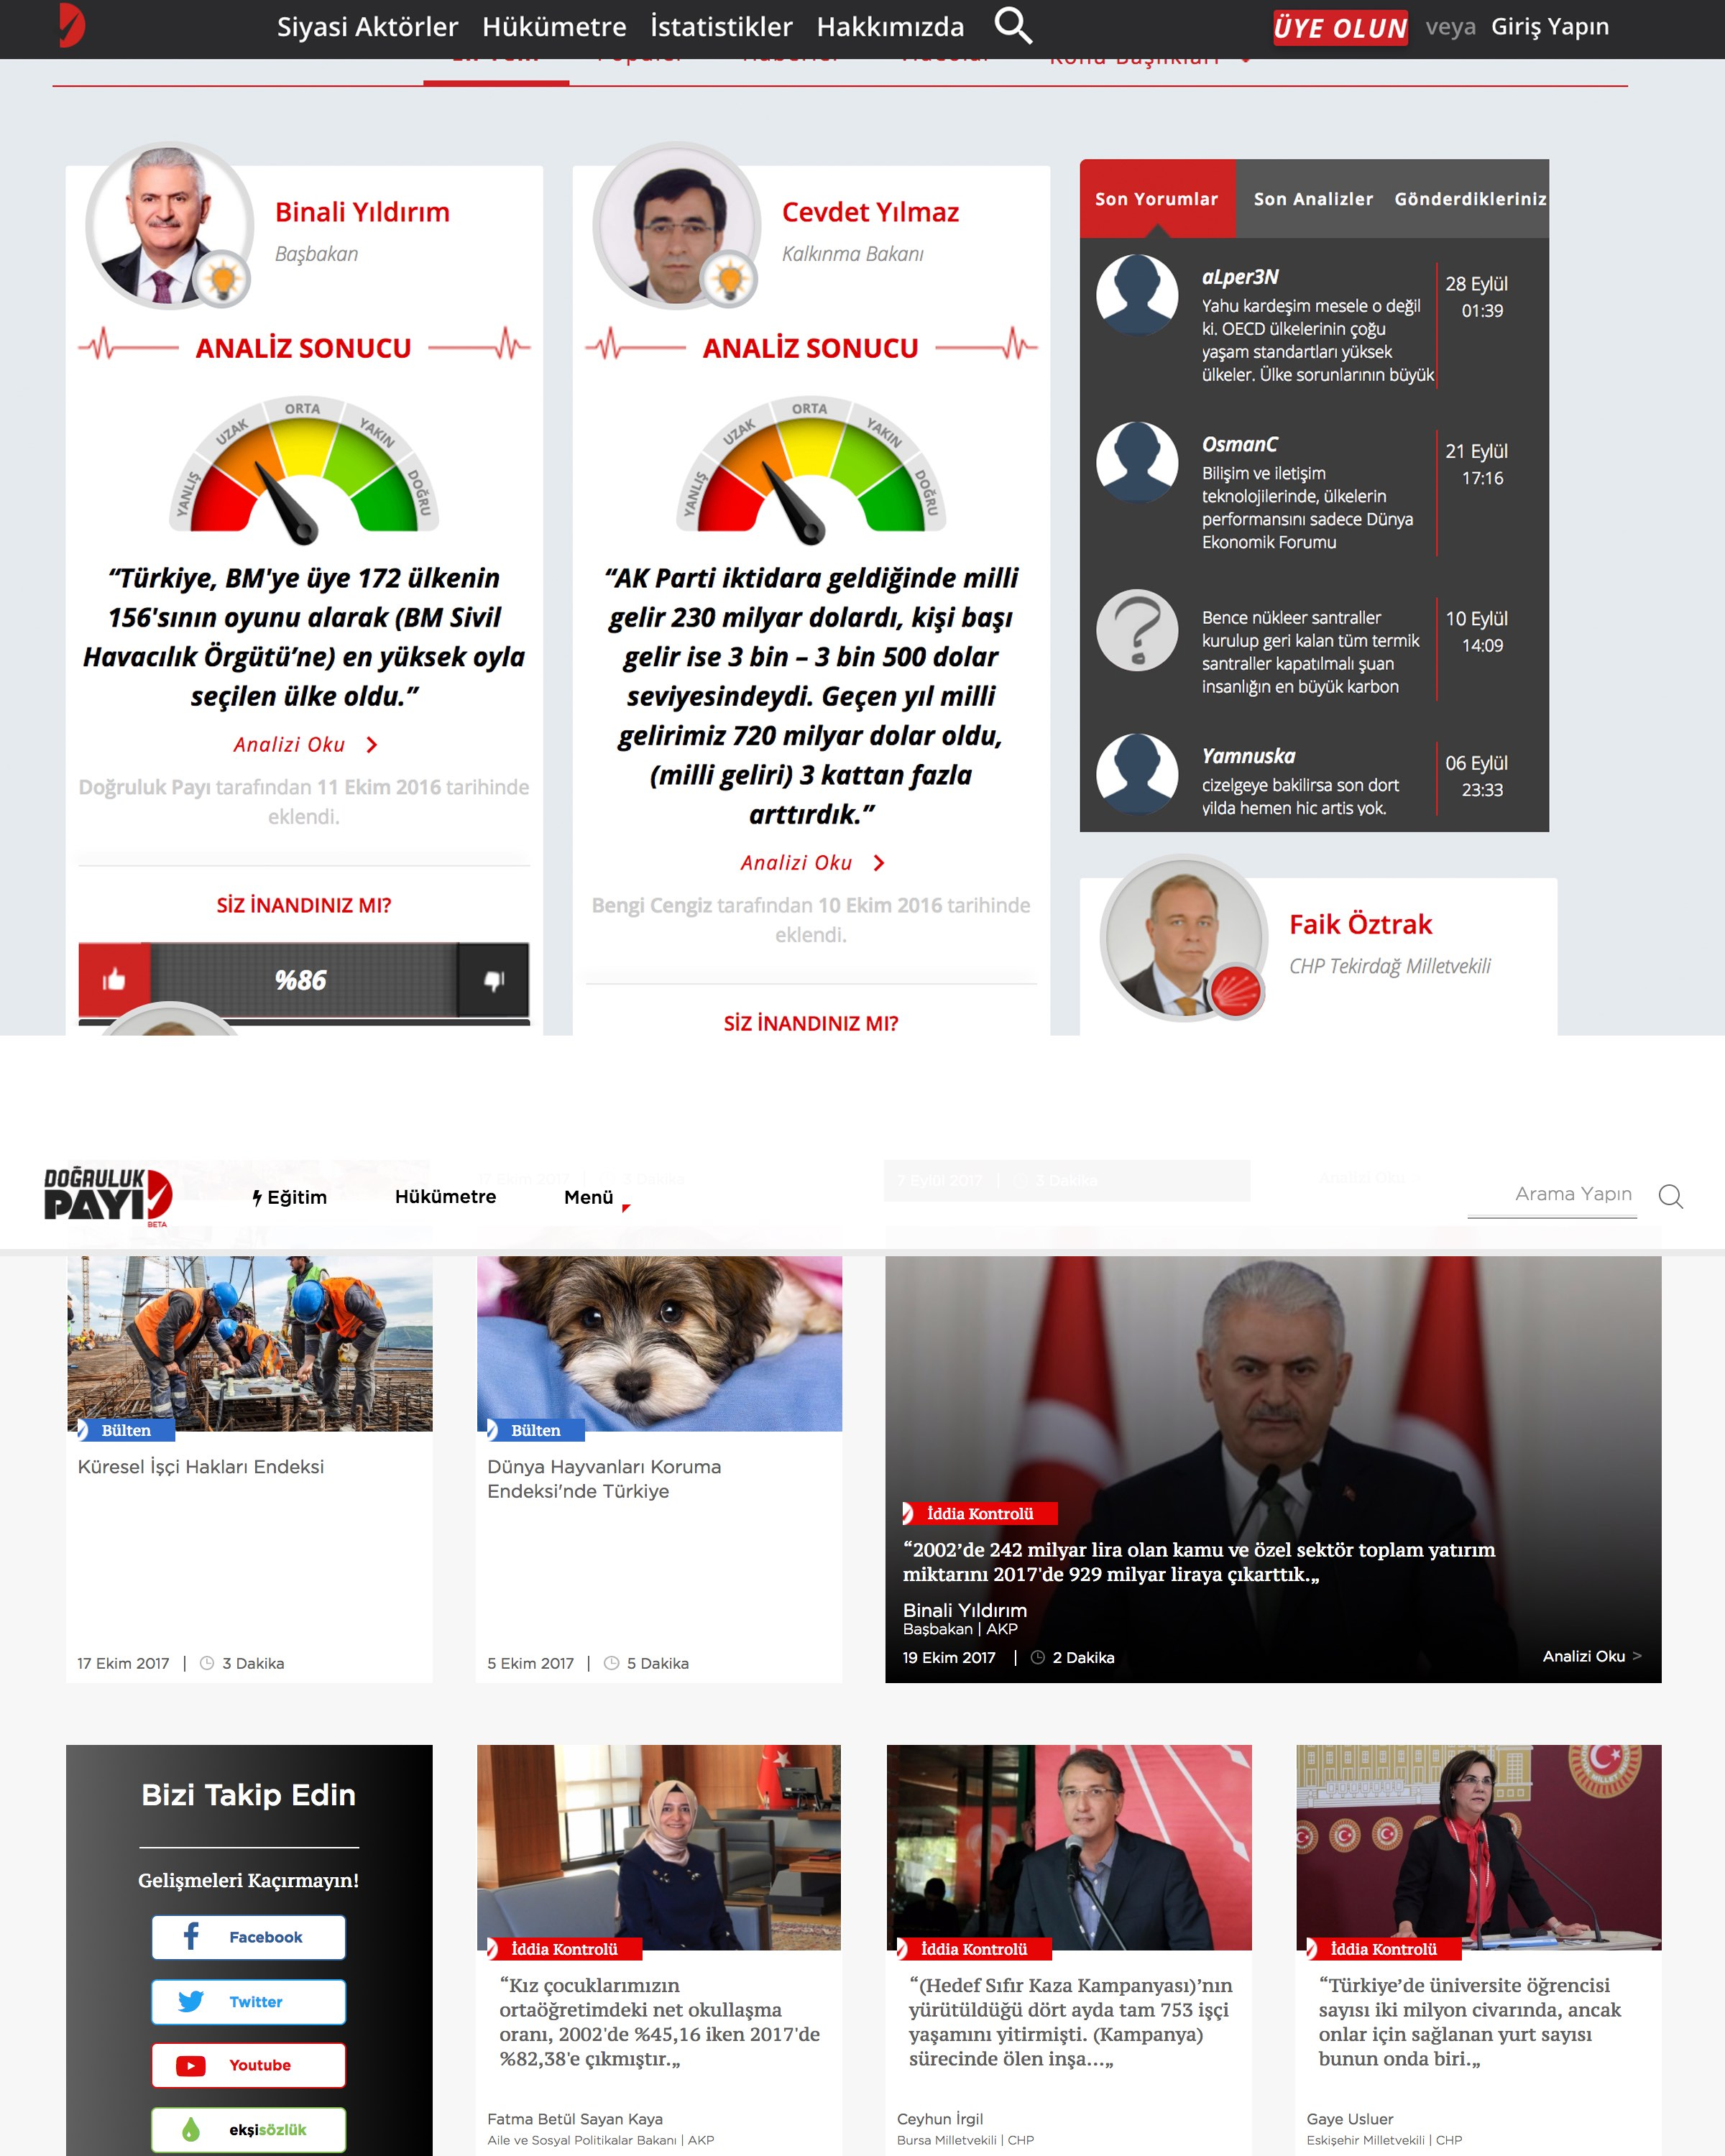 (From top): Doğruluk Payi's website before and after its recent redesign.